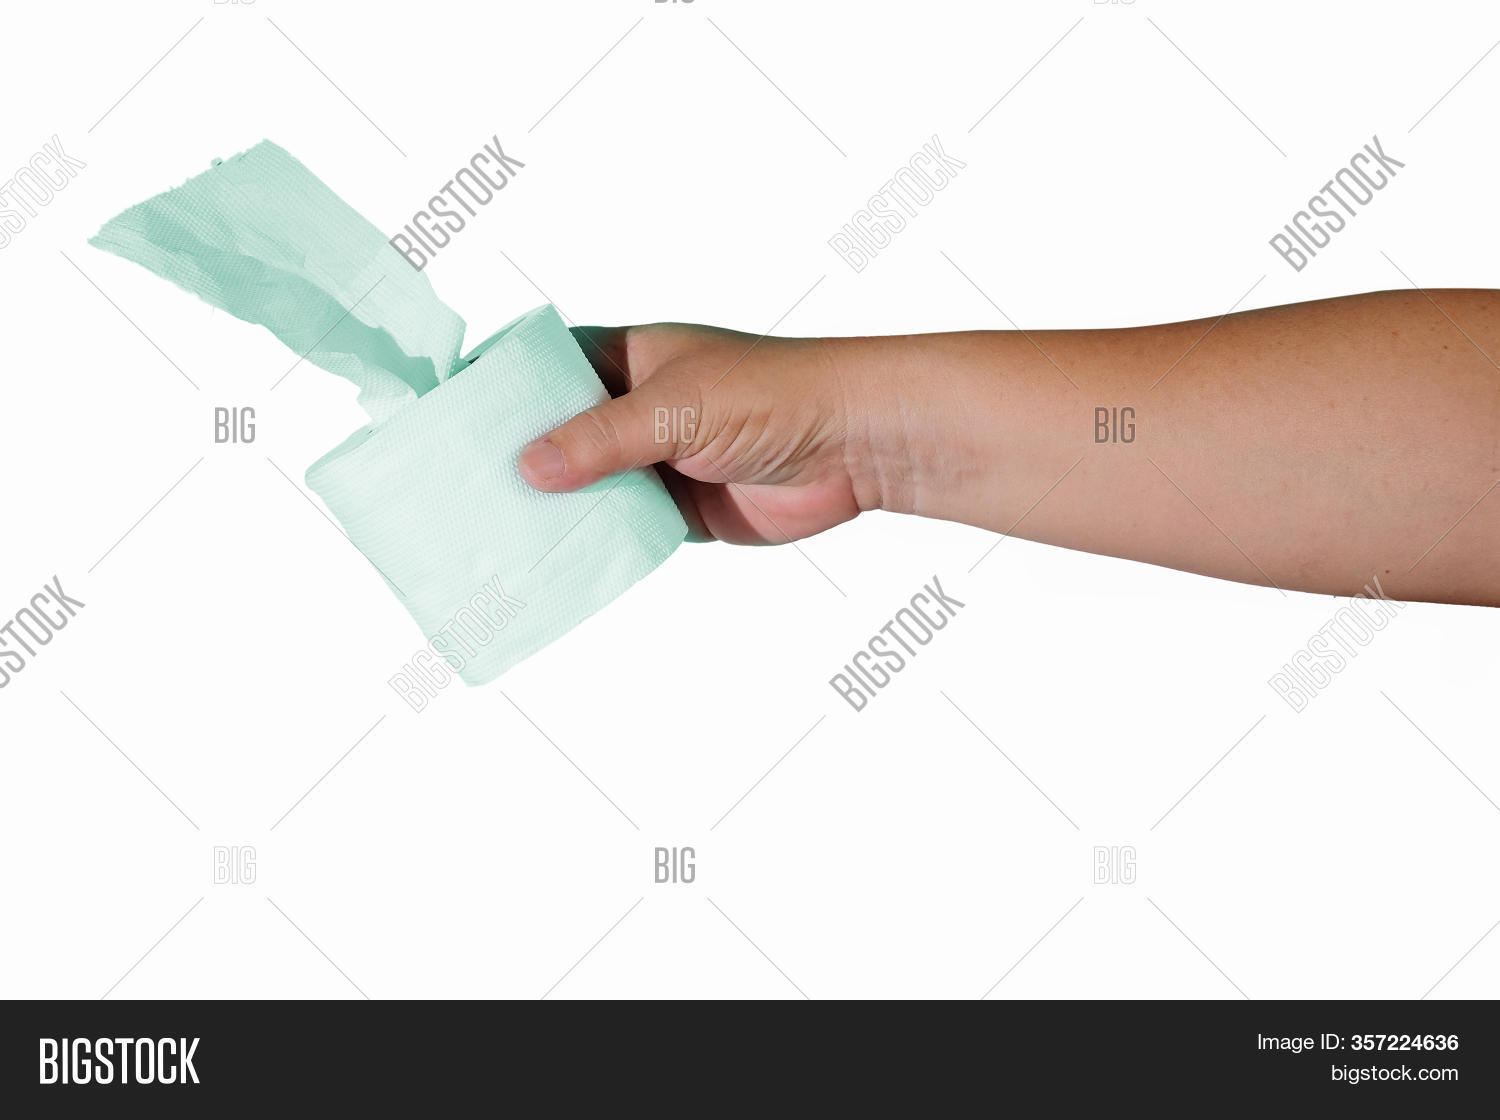 Roll Of Toilet Papers In Hand With A Soft Color Background.